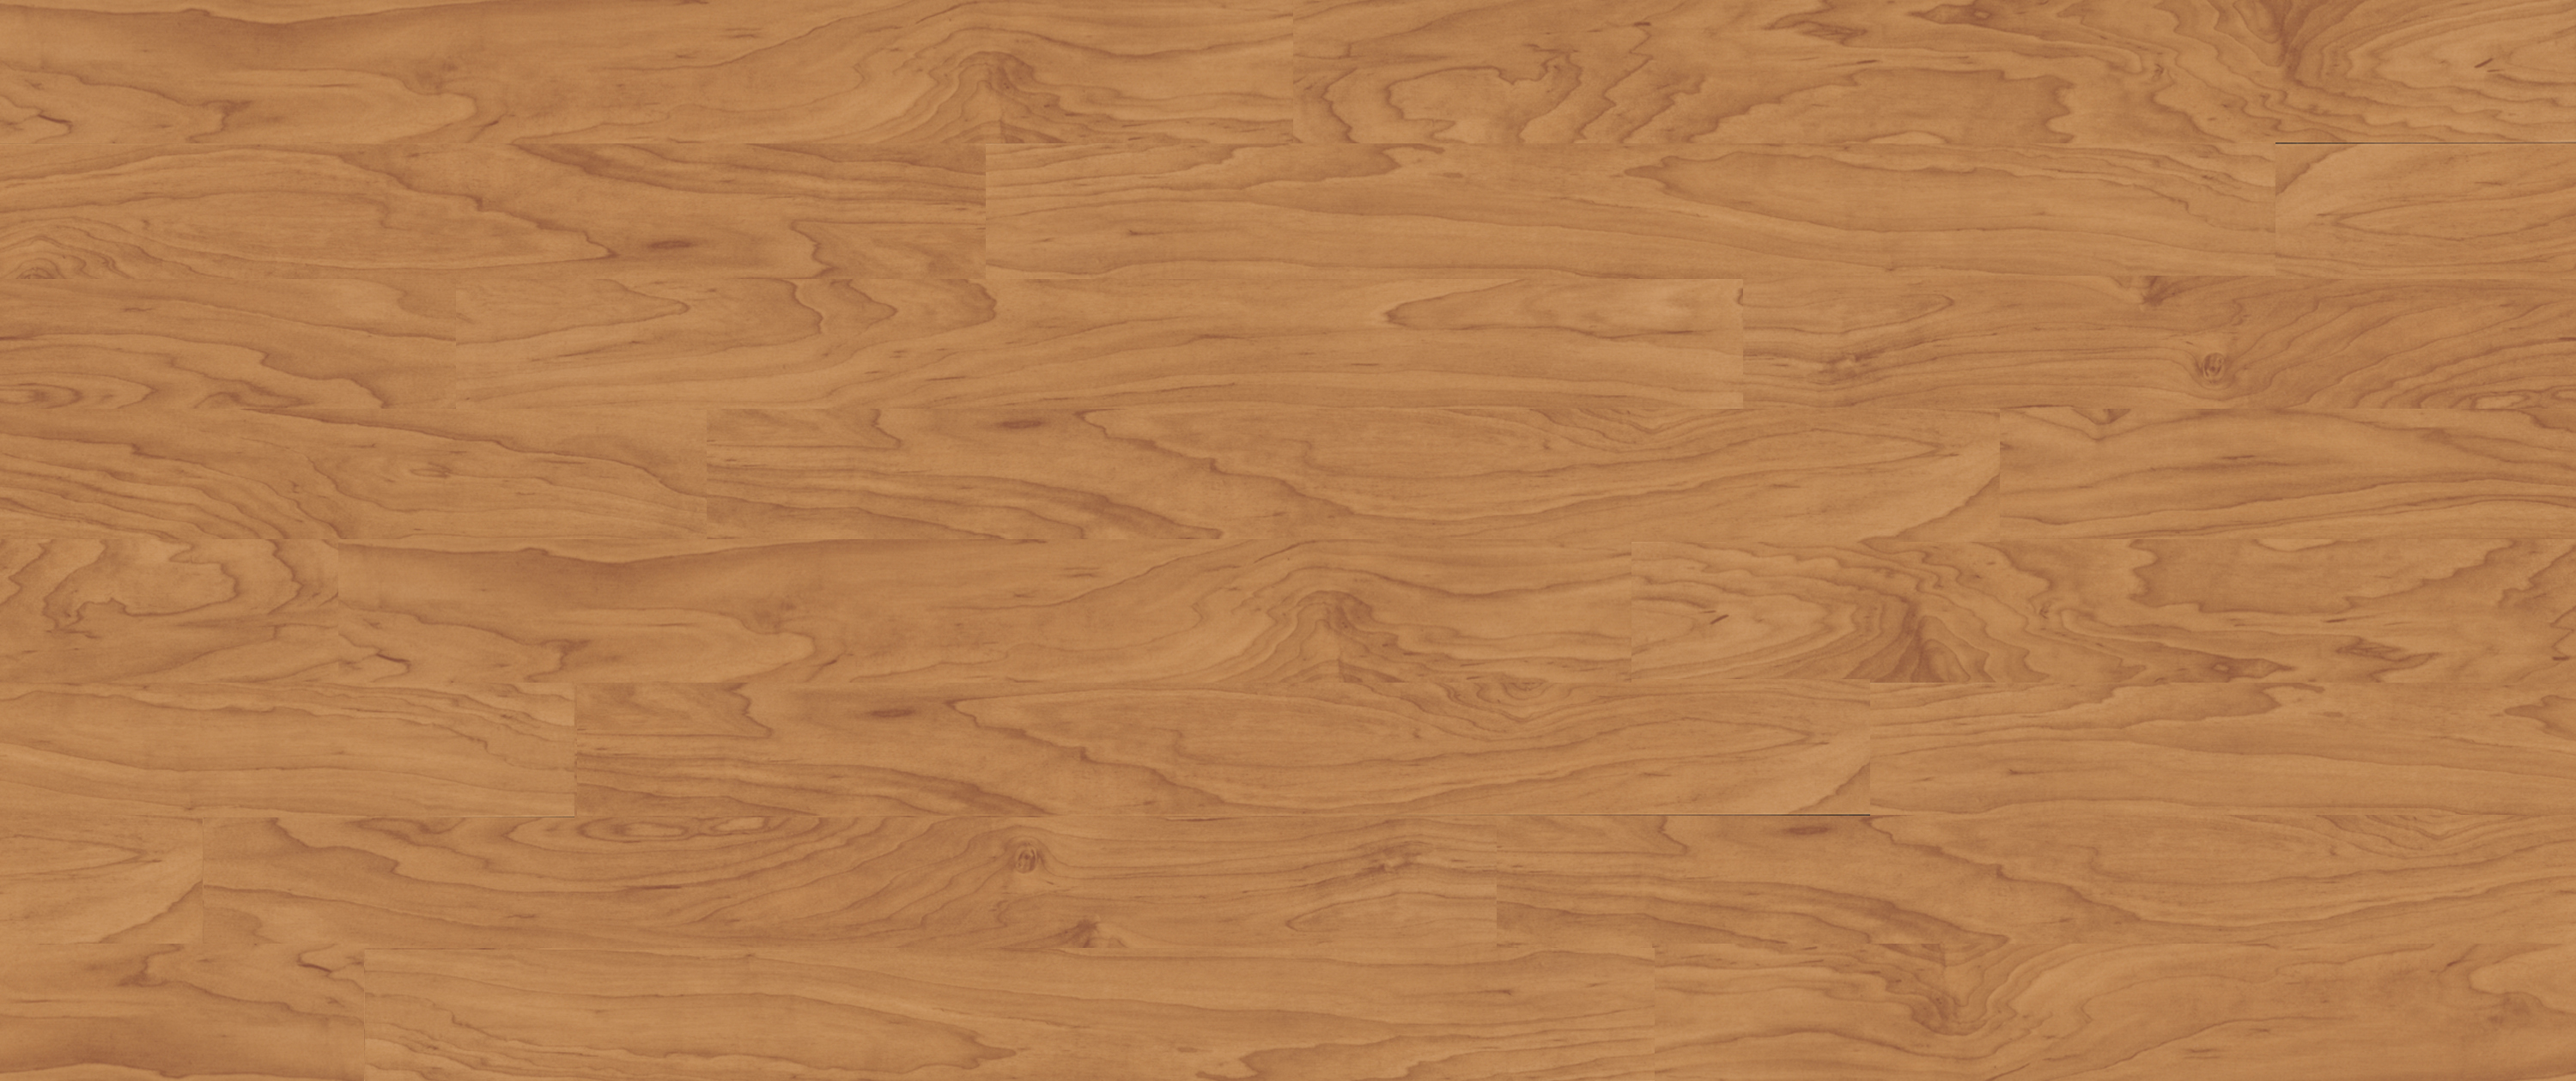 Solano Maple Sweet Sap Na171 Armstrong Flooring Commercial